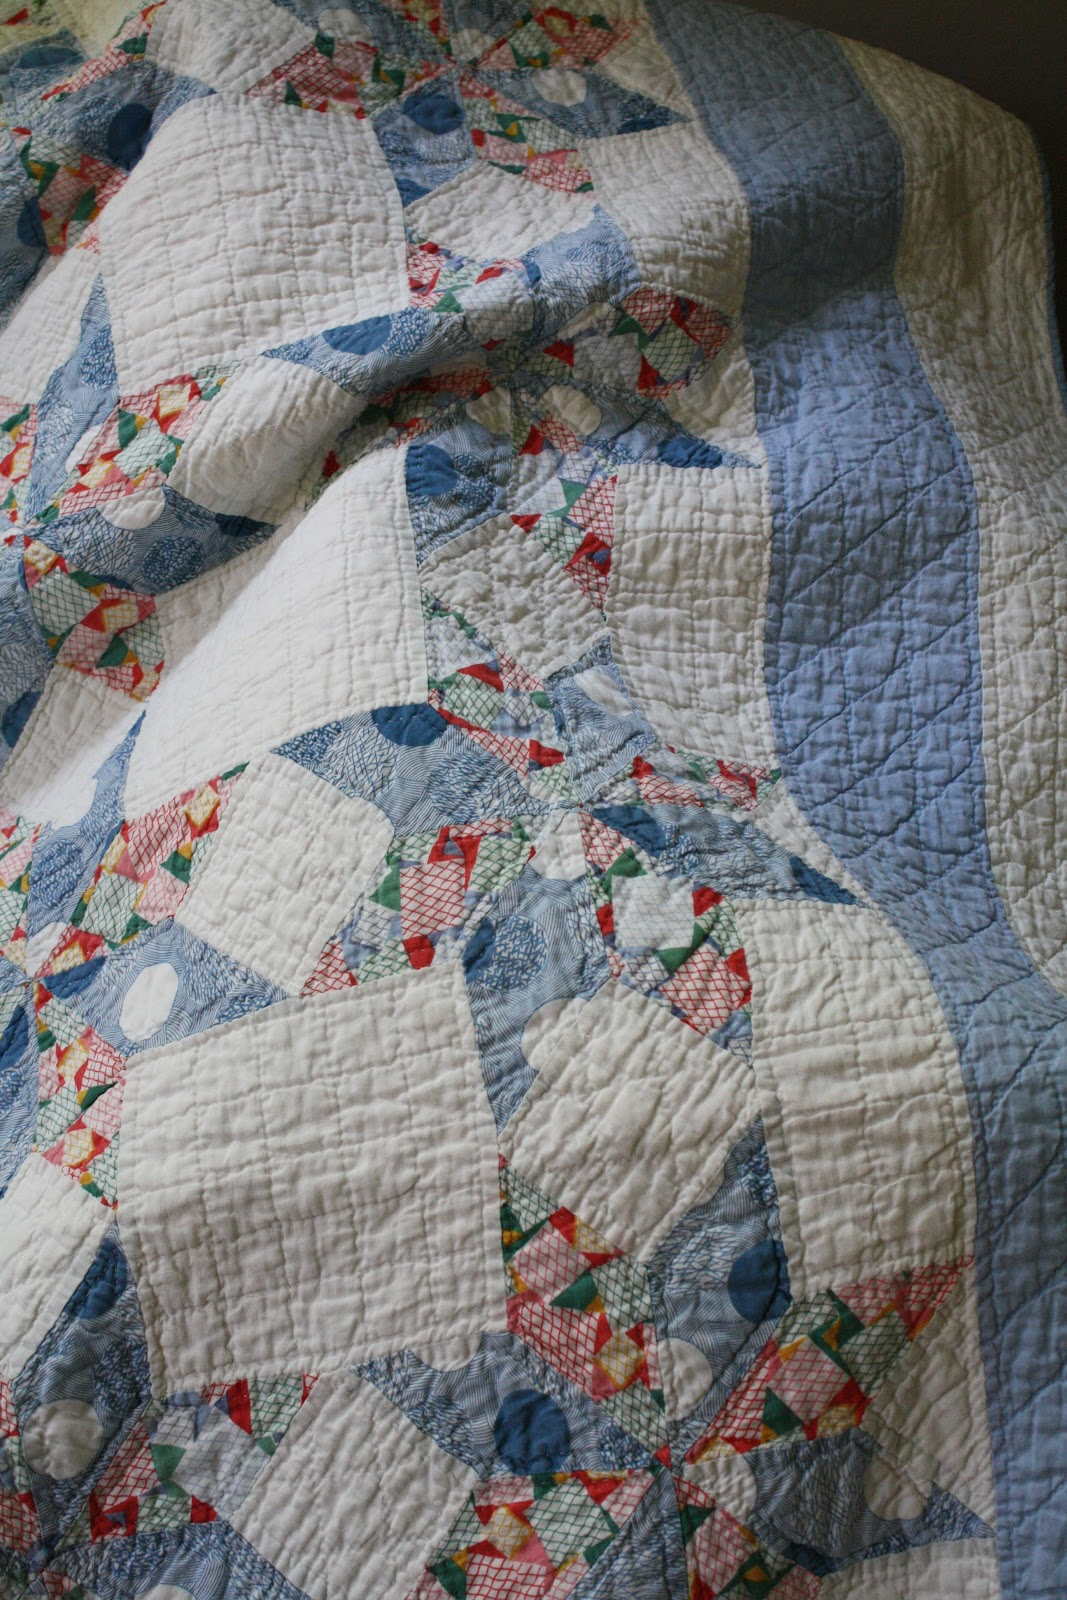 Pearl The Squirrel Antique Quilts From Kalona